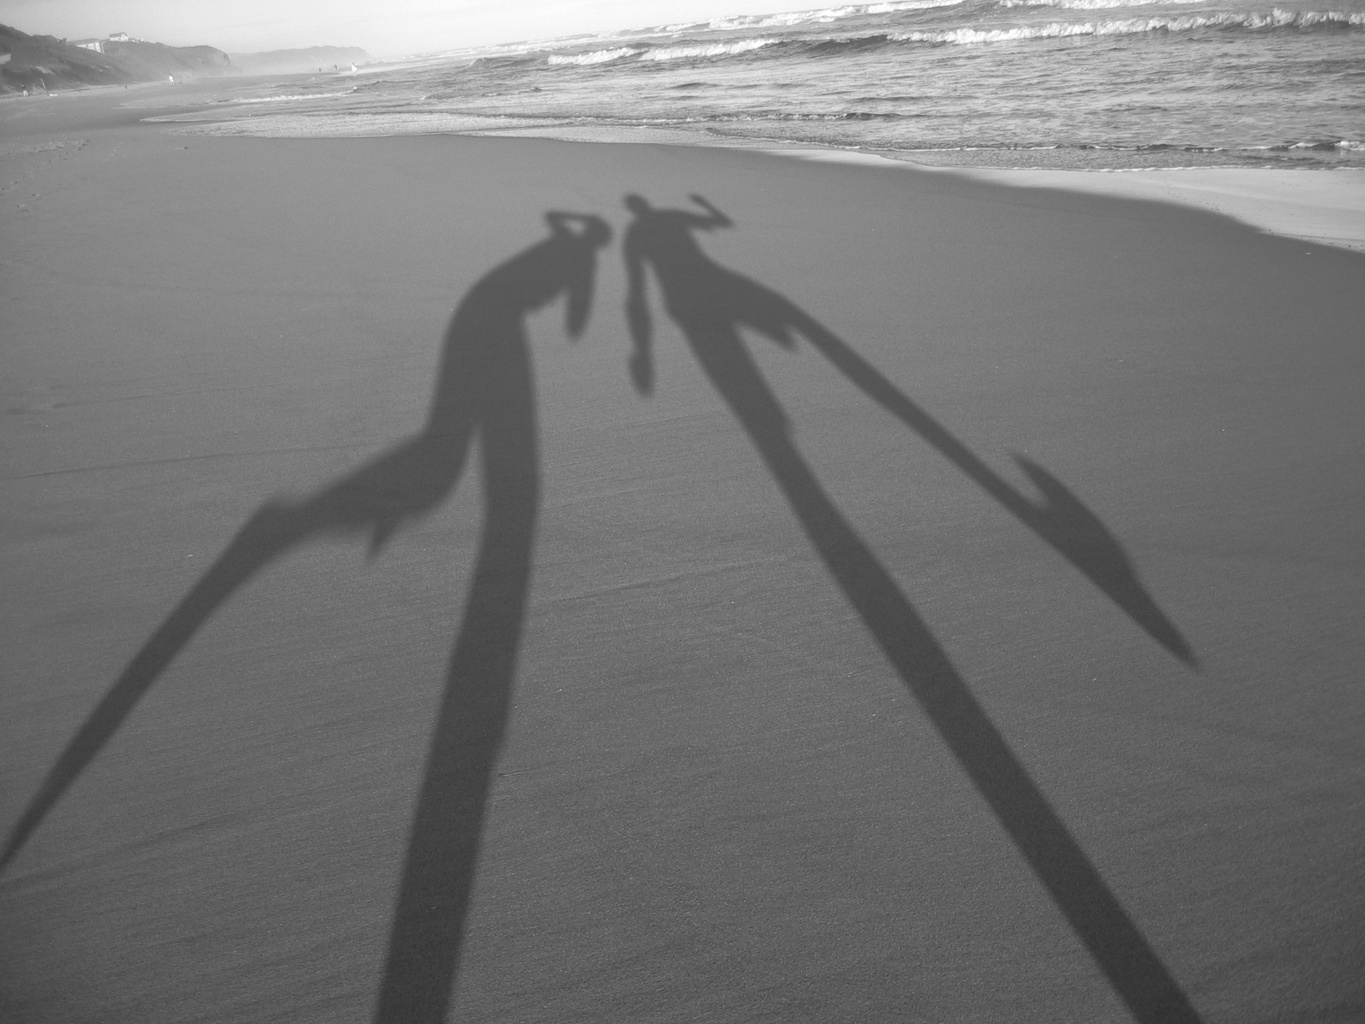 http://upload.wikimedia.org/wikipedia/commons/8/82/Shadows-in-the-sand.jpg